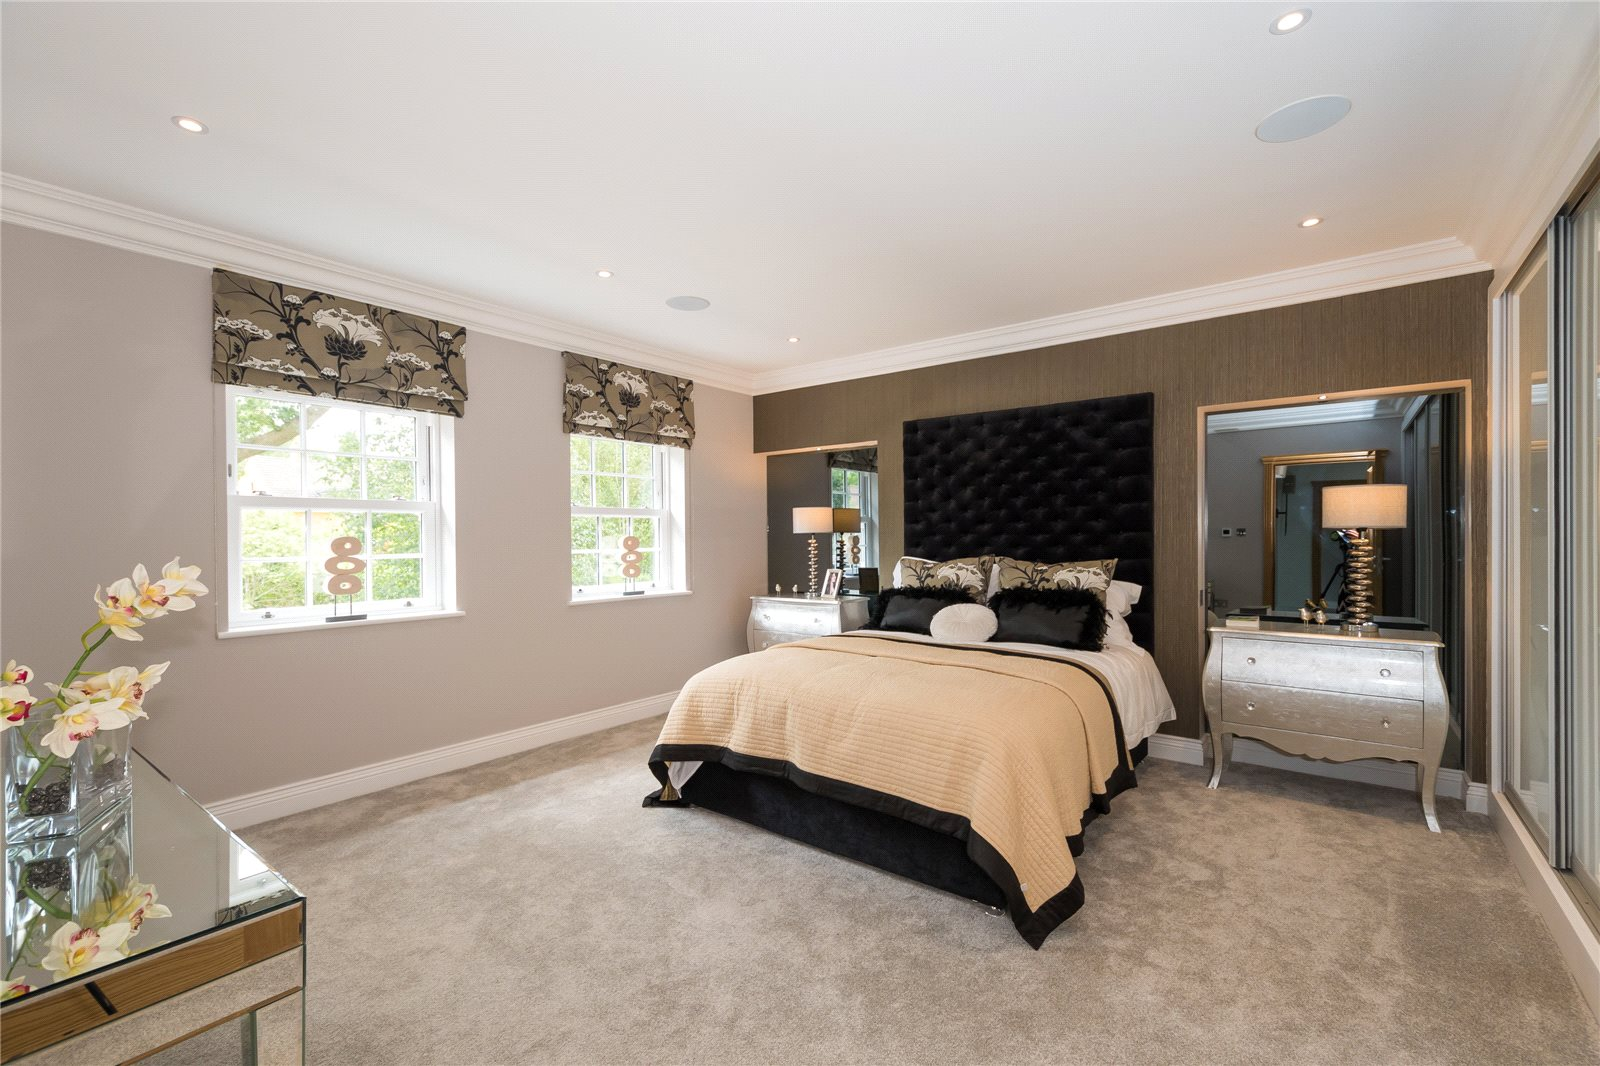 Additional photo for property listing at Coombe Vale, Gerrards Cross, Buckinghamshire, SL9 Gerrards Cross, Engeland